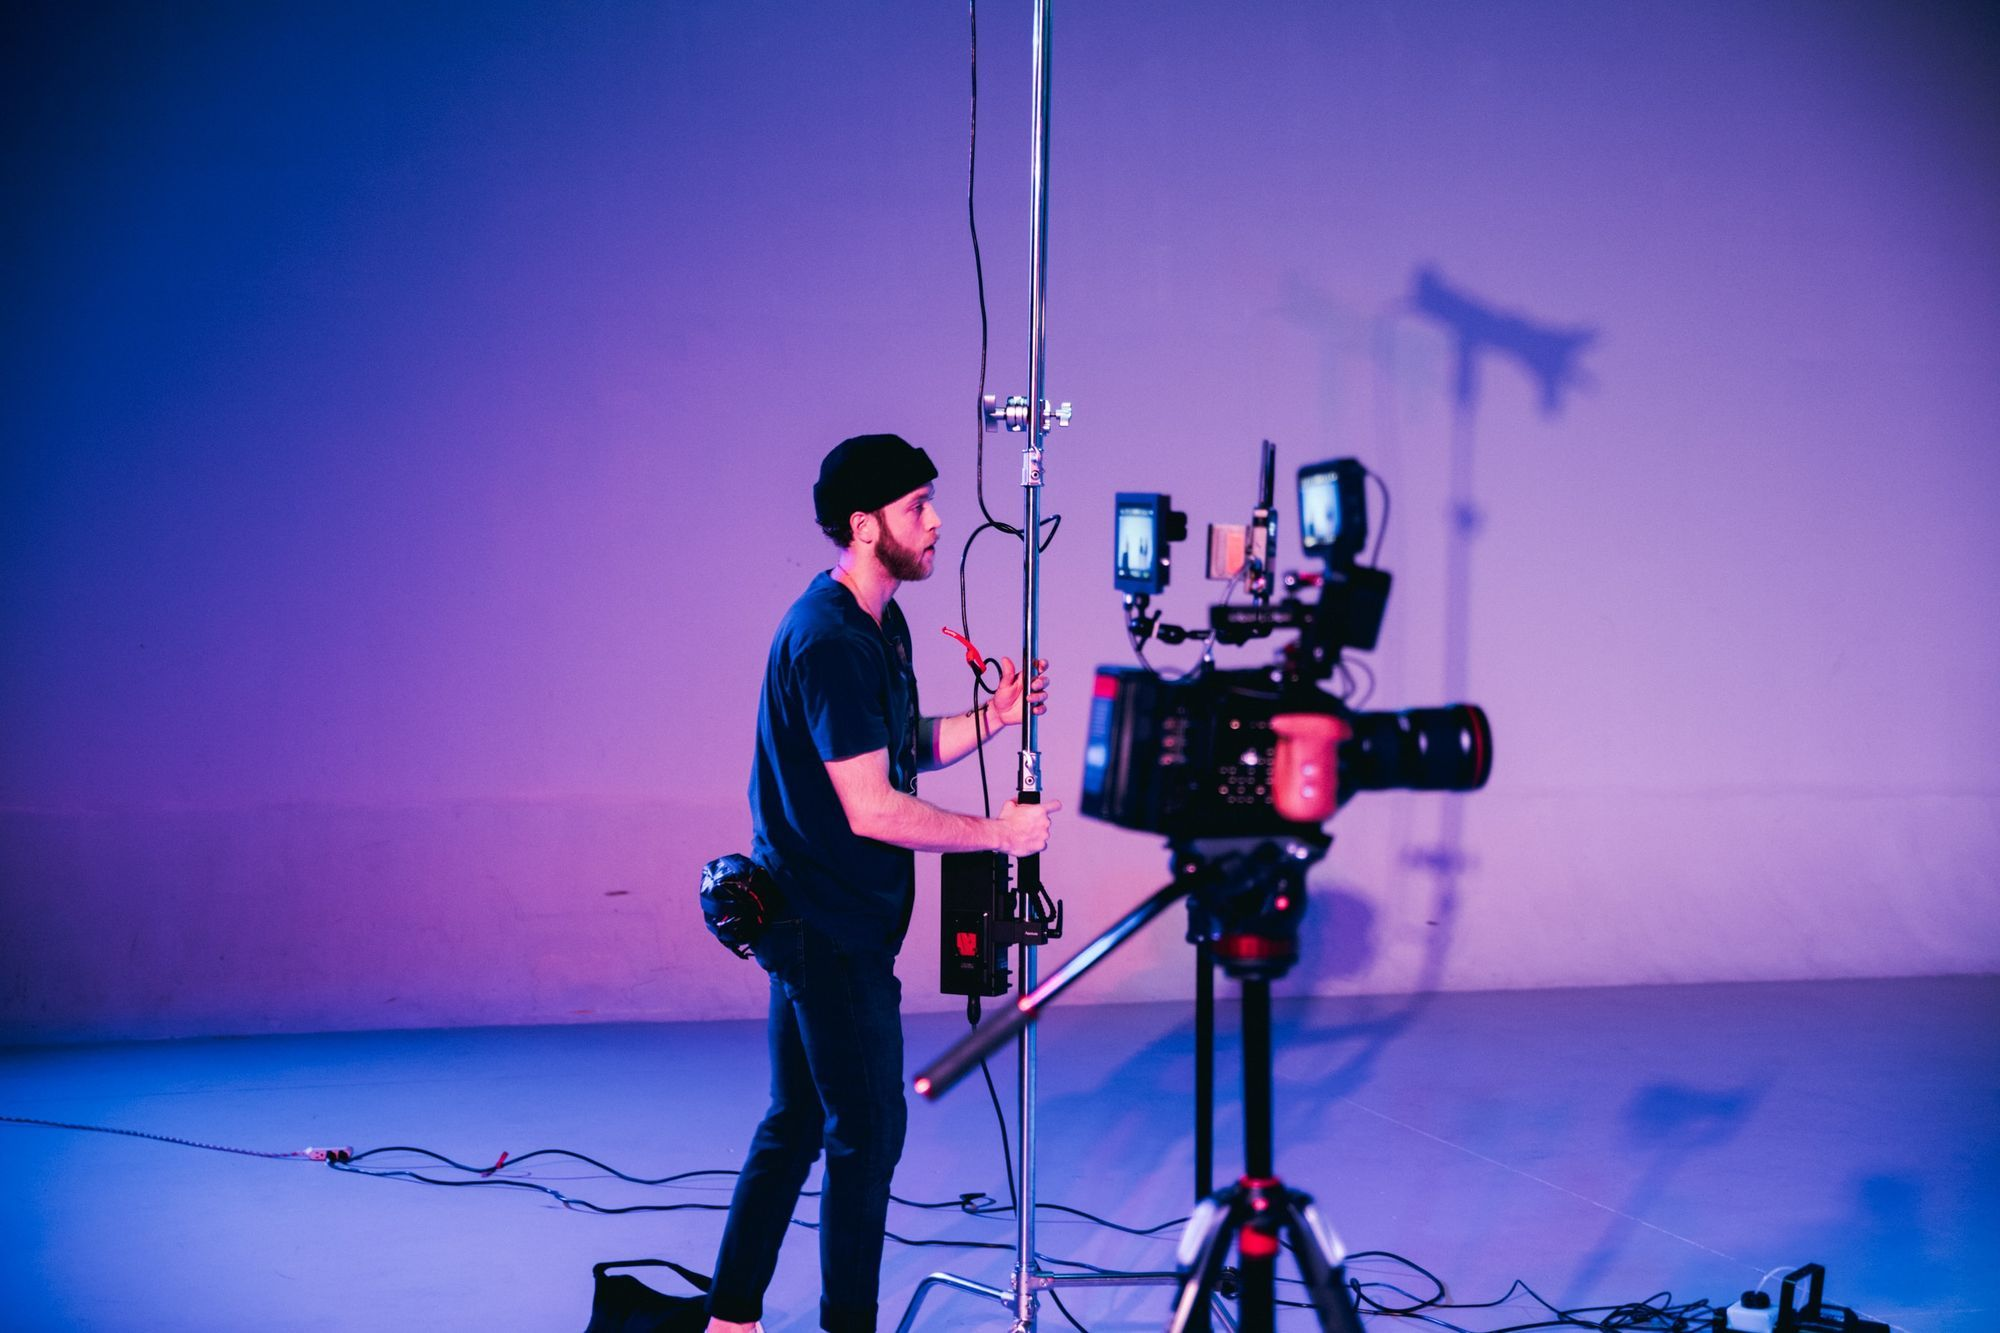 Establish the visual look is part of a cinematographer's duties